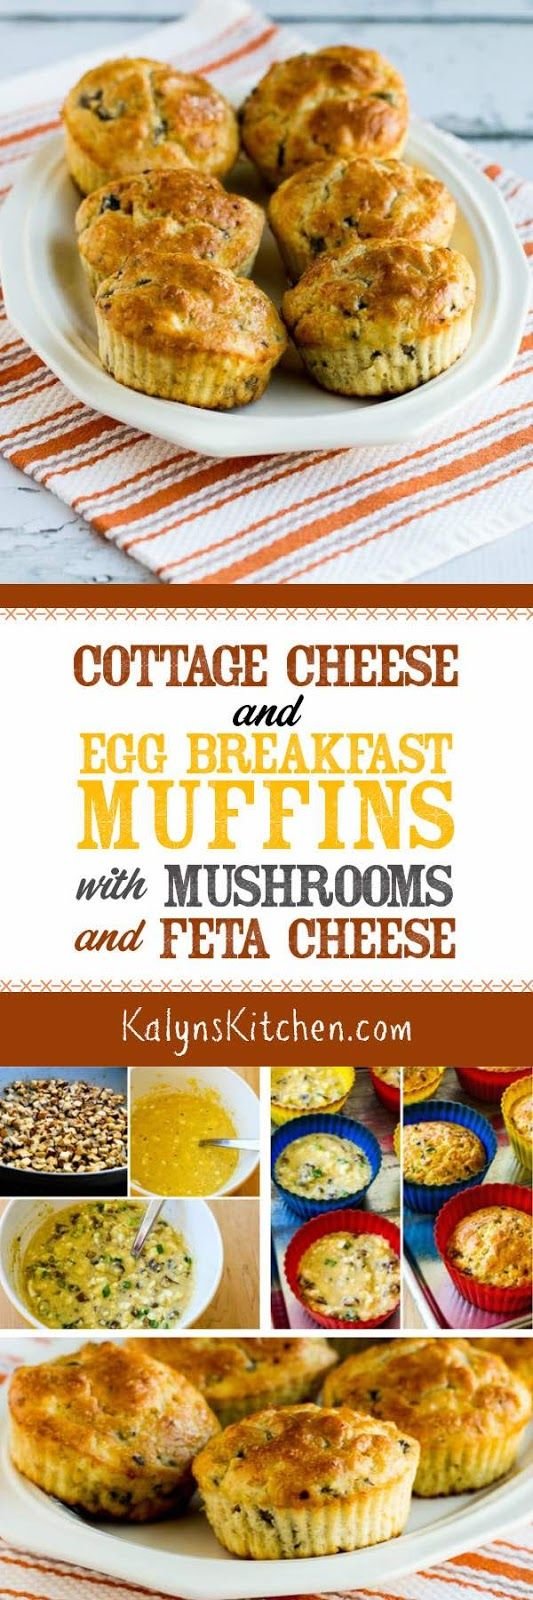 Healthy Recipes : Cottage Cheese and Egg Breakfast Muffins ...